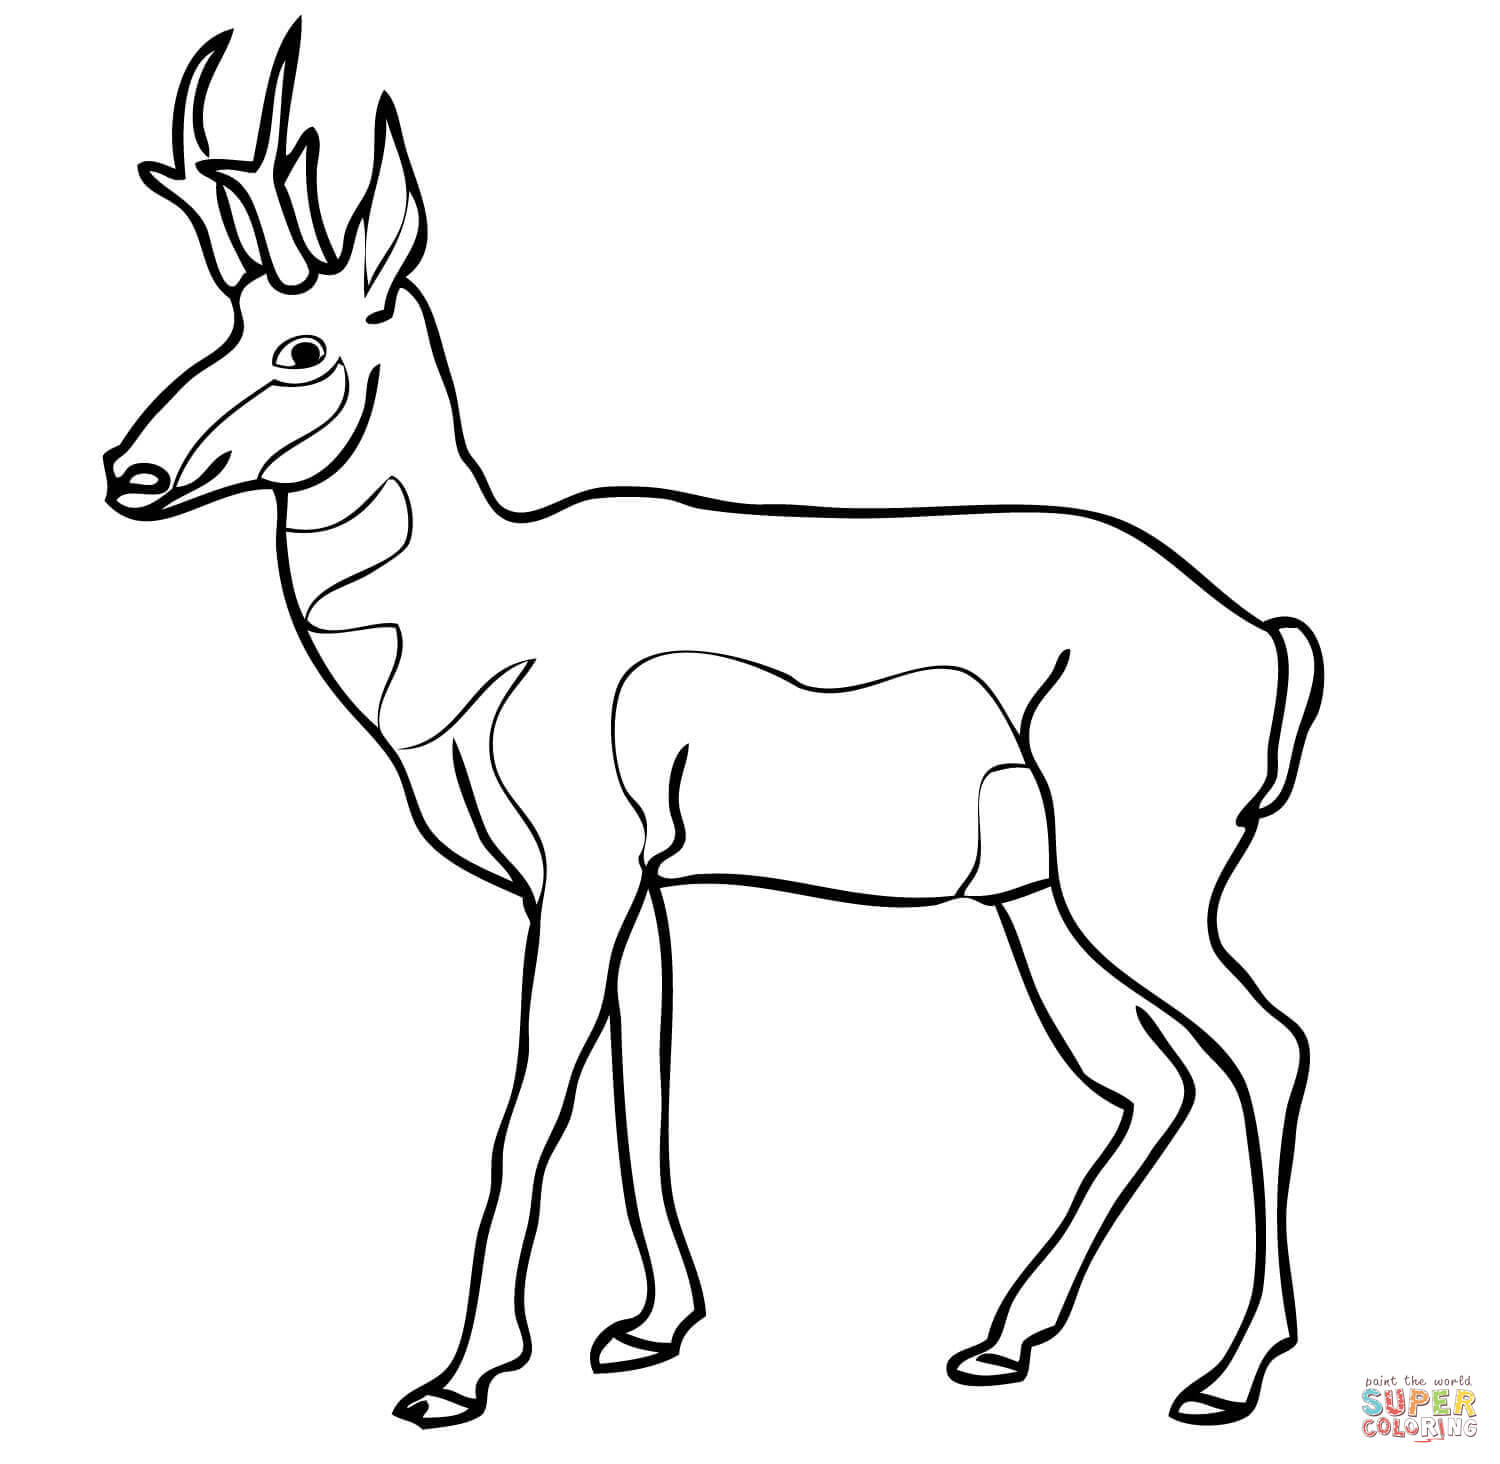 Pronghorn North American Antelope Coloring Page